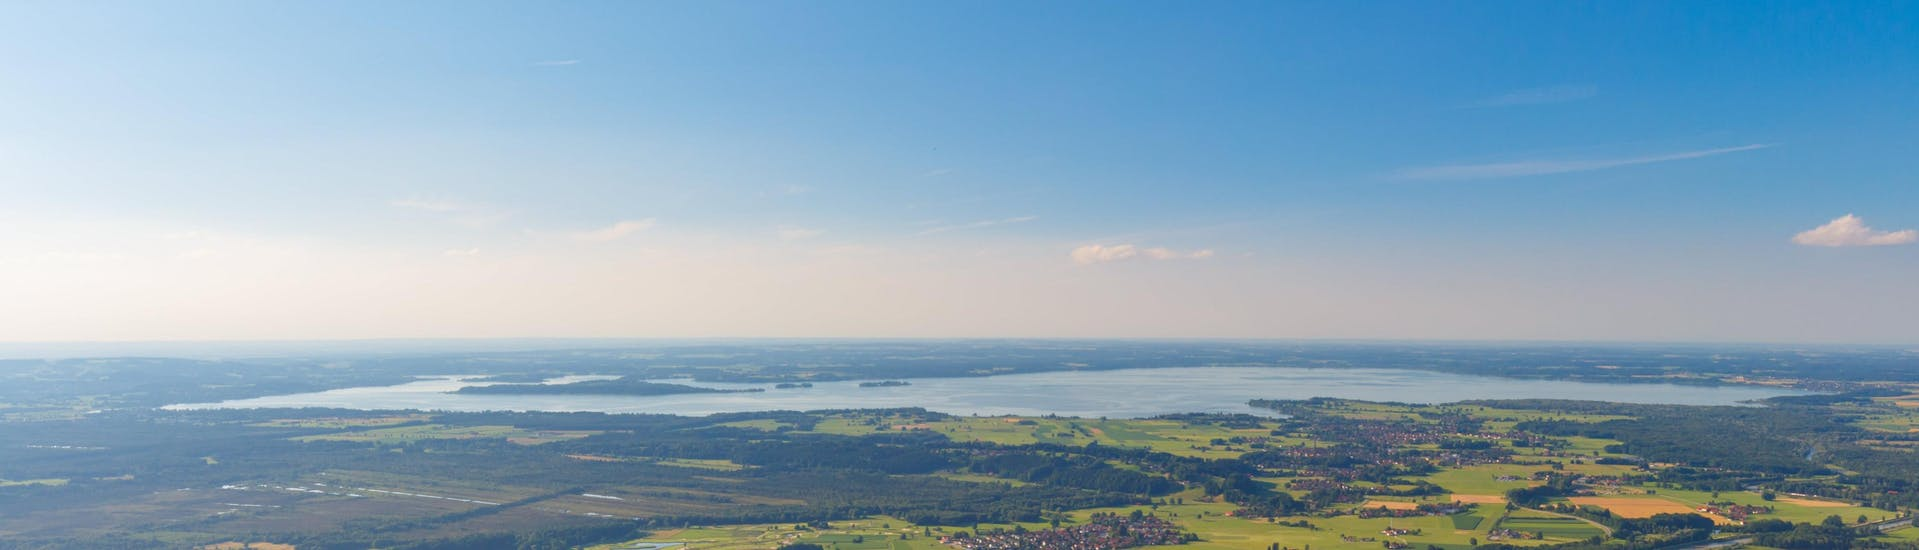 A hot air balloon ride over the ballooning hotspot of Chiemsee.